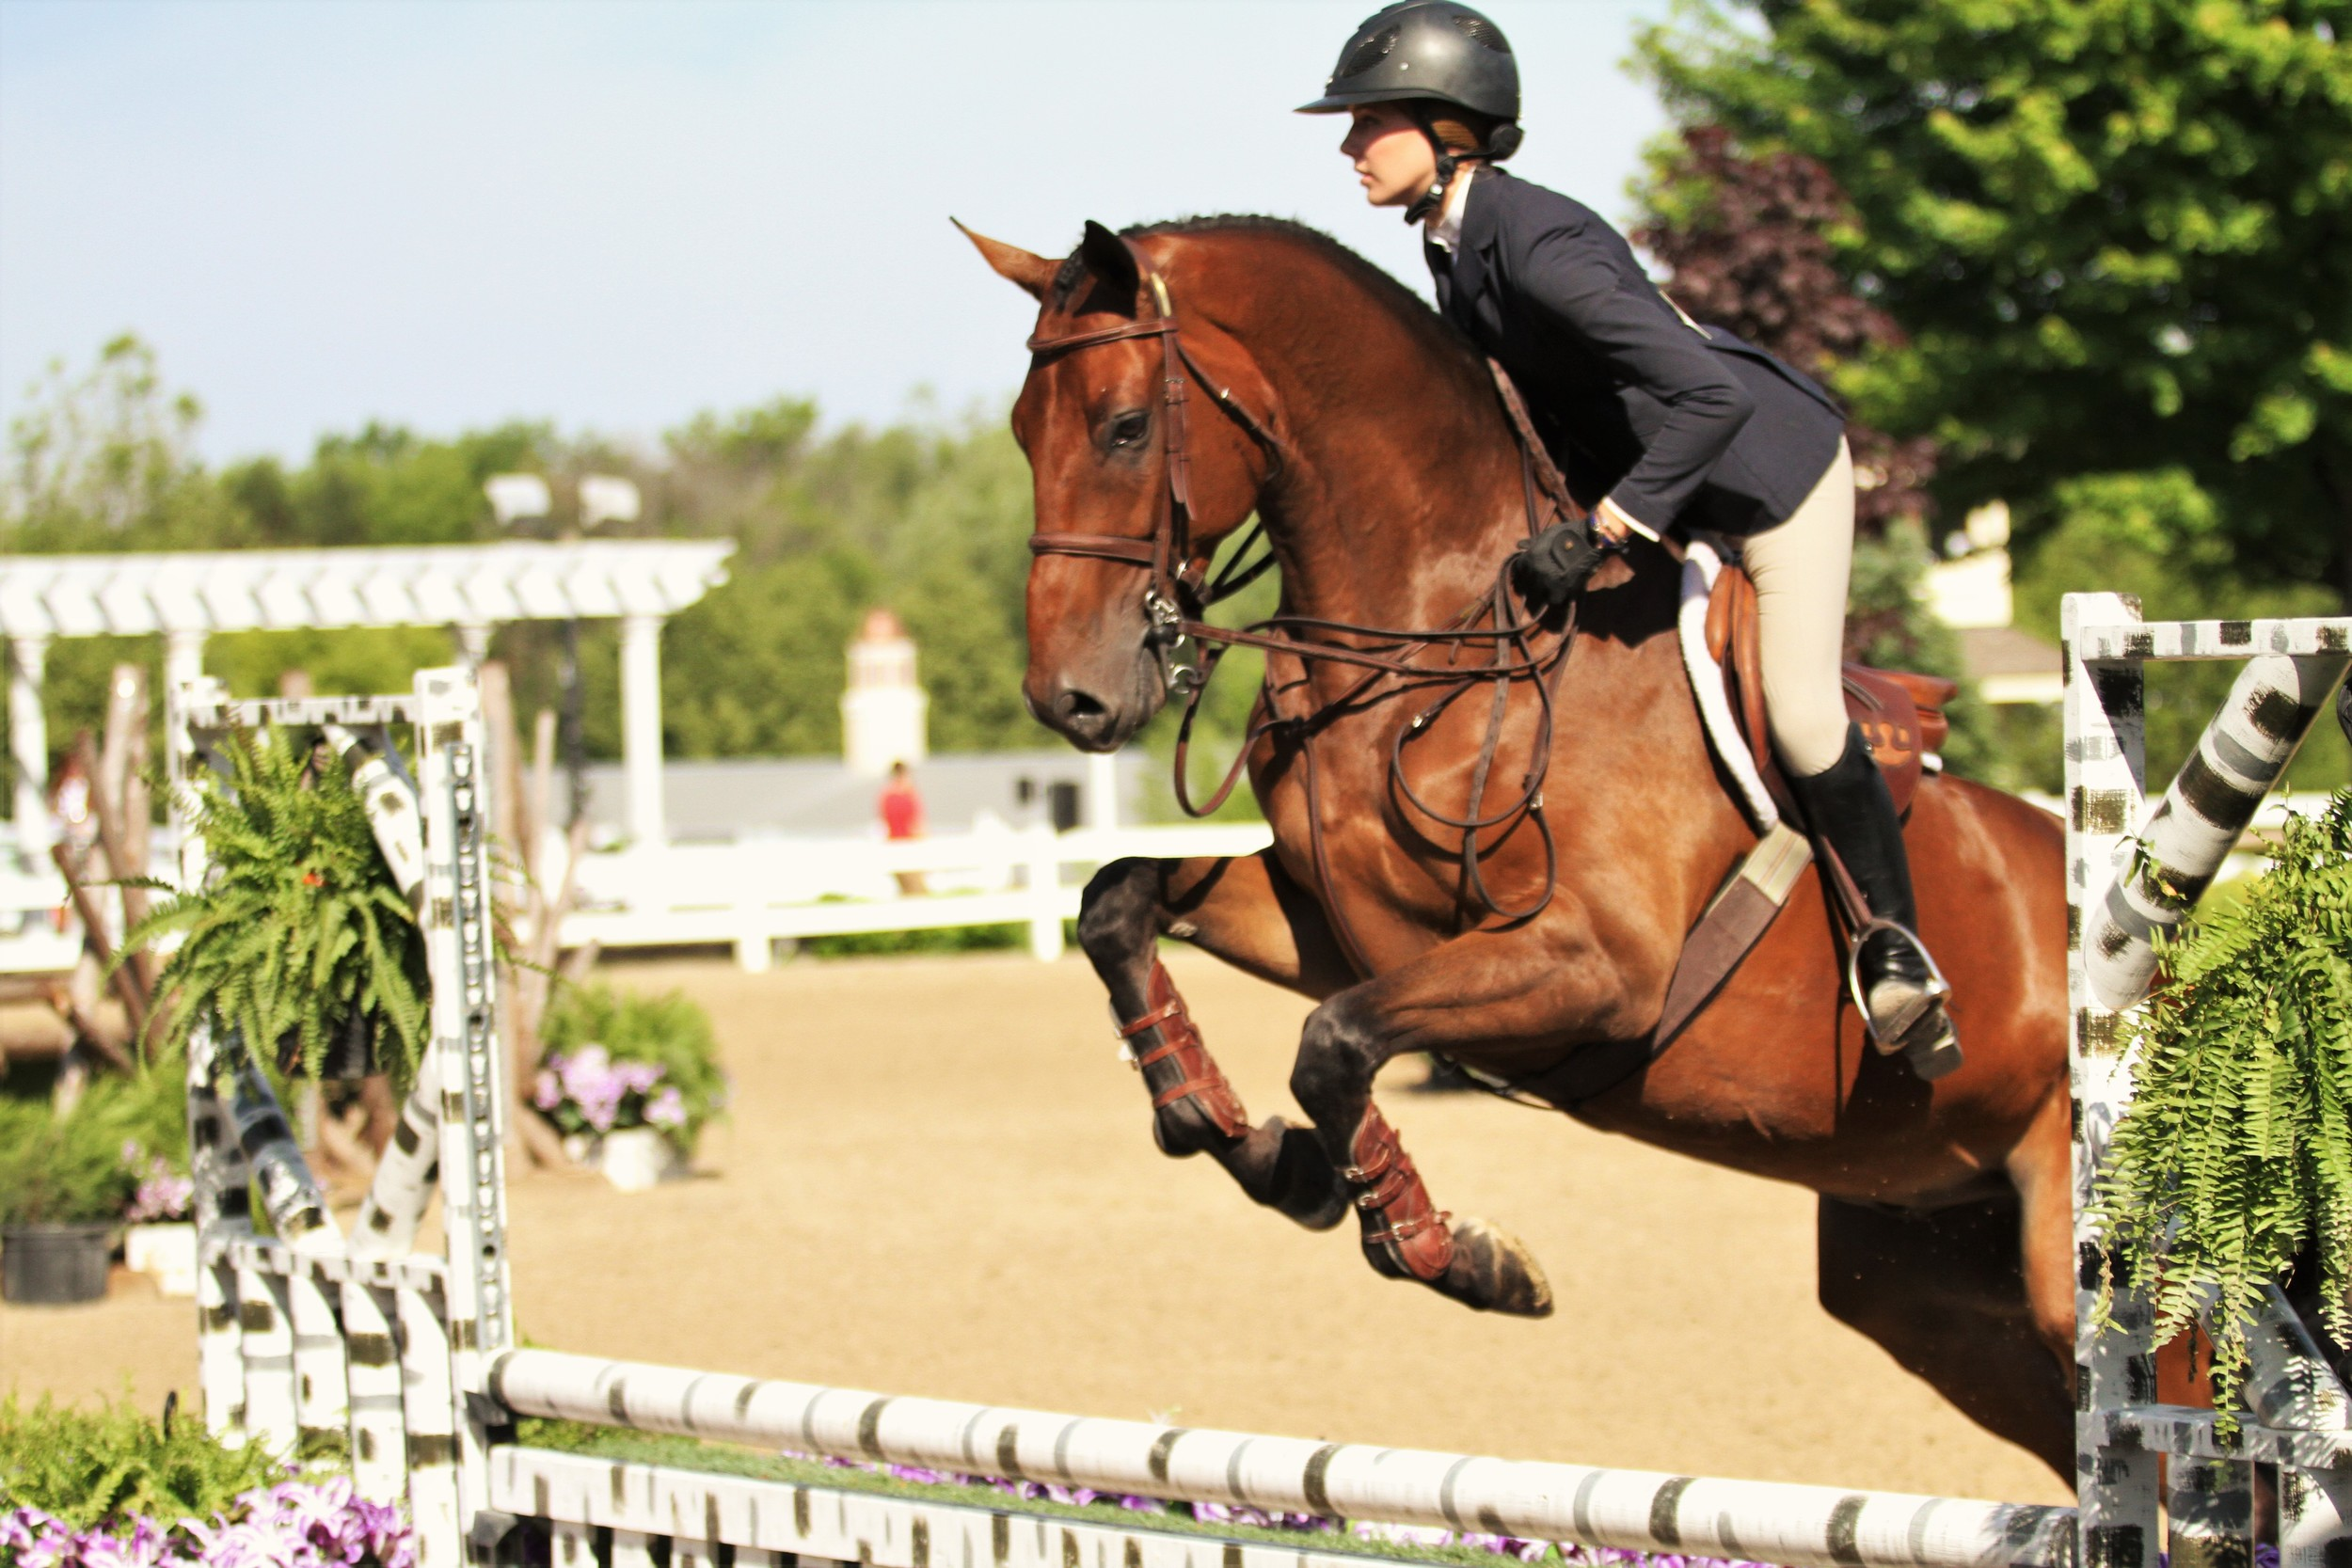 Claire McKean and Quintus Rubin     USEF/Pessoa Hunt Seat Medal    Claire McKean and Quintus Rubin, owned by North Run, topped the class to take home the USEF/Pessoa Hunt Seat Medal.